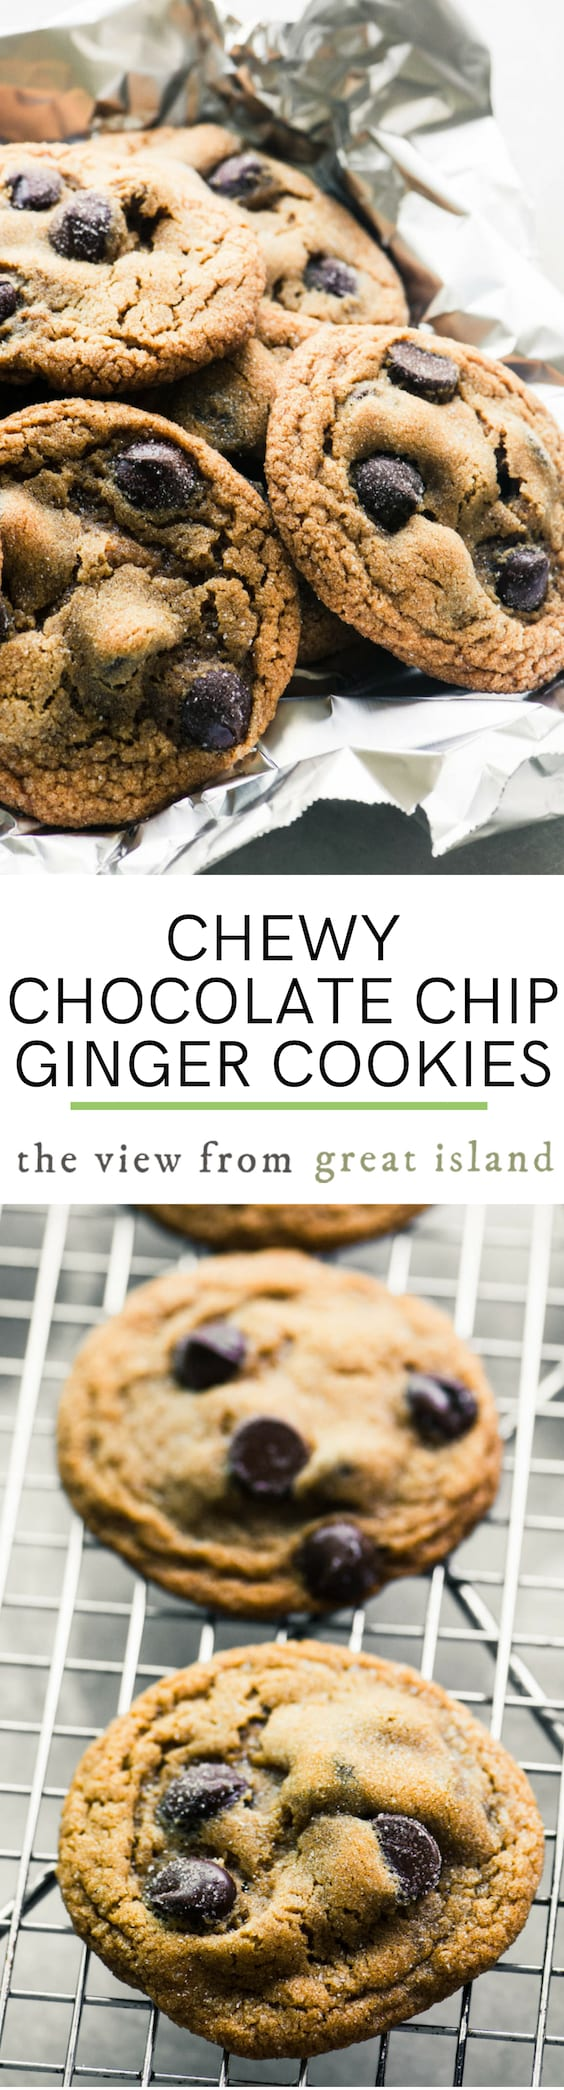 Chewy Chocolate Chip Ginger Cookies ~ these spiced molasses cookies have been upgraded with a bit of dark chocolate for a 'best of all worlds' holiday cookie. #recipe #easy #molasses #chewy #Christmascookie #spicecookie #chocolatechipcookie #holidays #soft #fresh @crispy #dessert #cookie